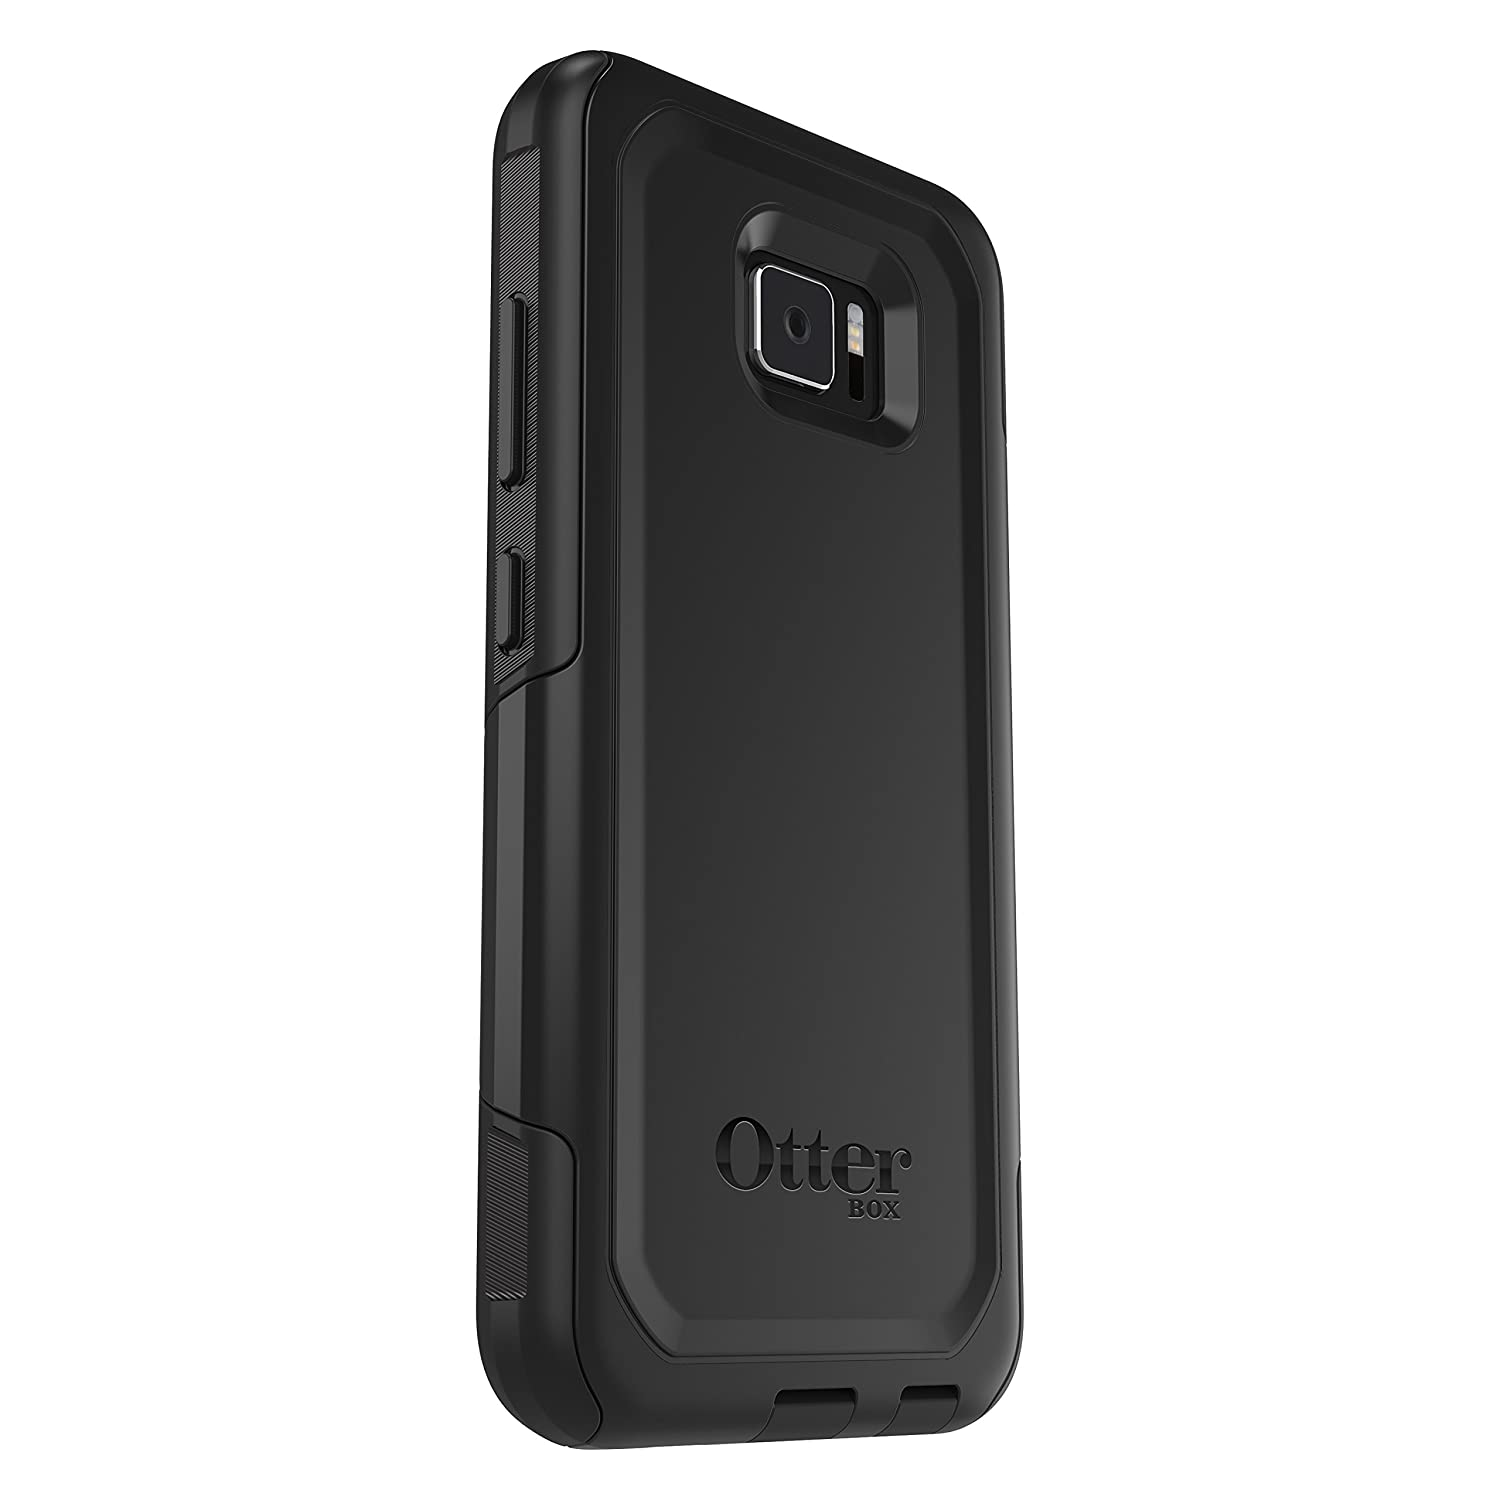 Amazon.com: OtterBox COMMUTER SERIES - Carcasa para ASUS ...